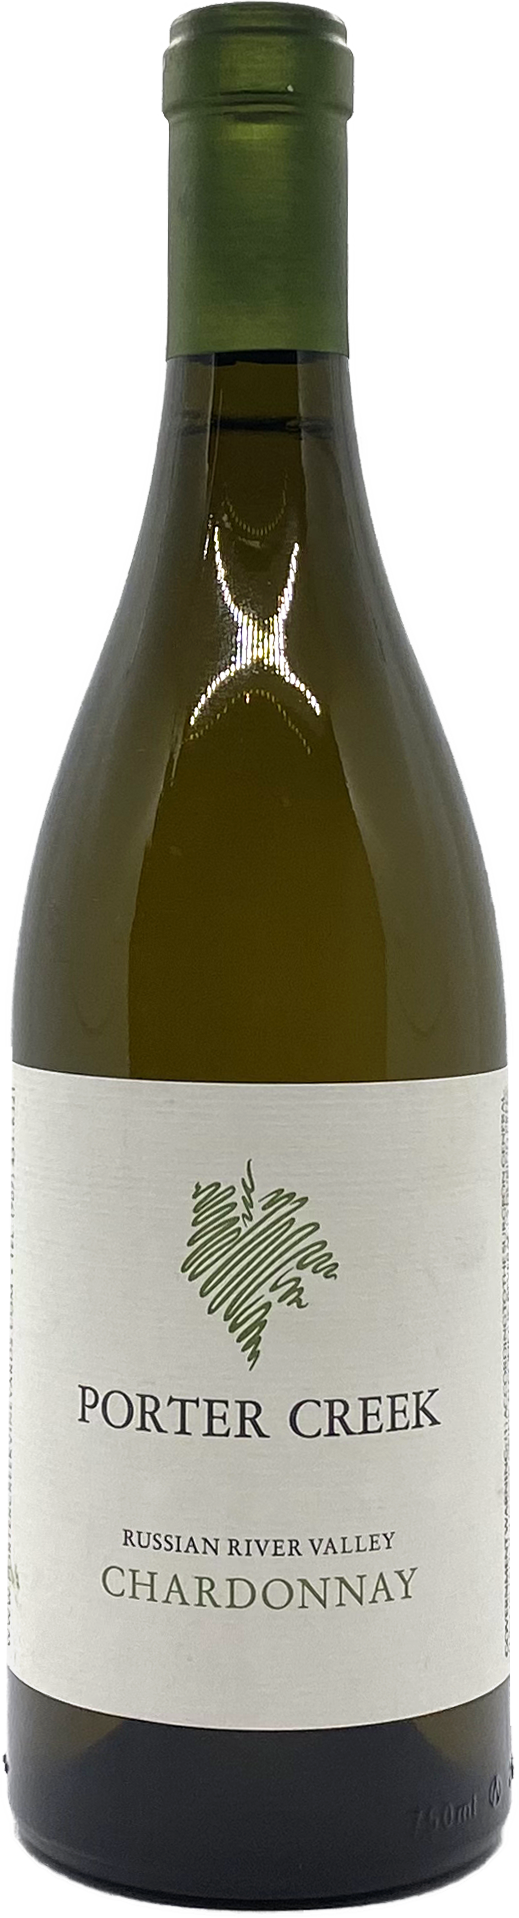 Porter Creek Chardonnay Russian River Valley 2016